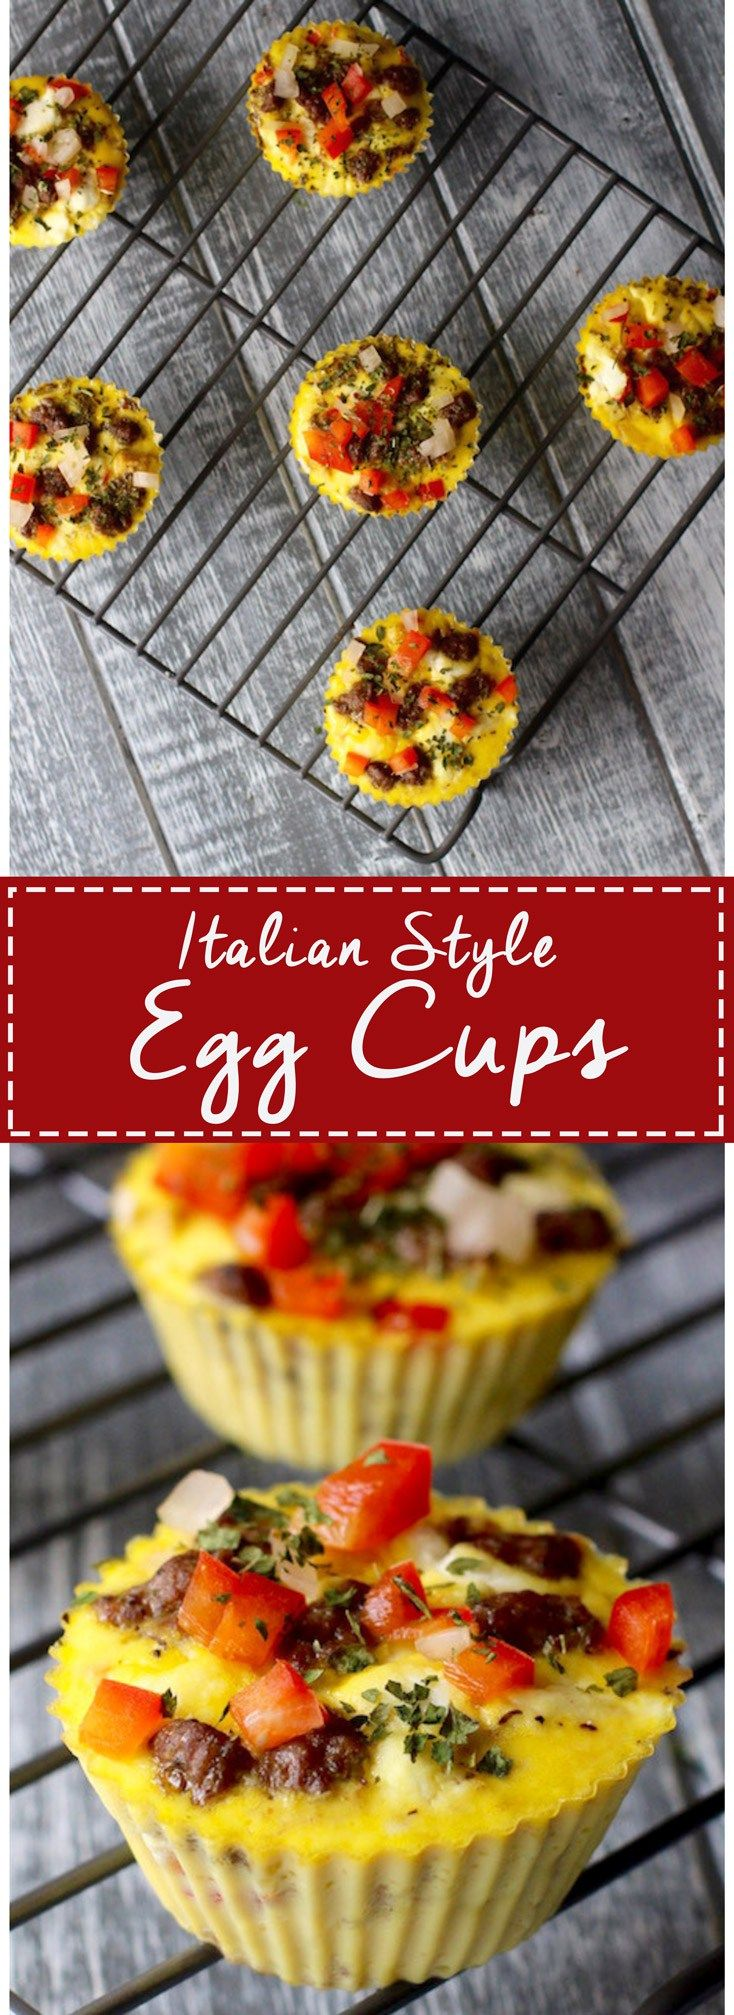 Freezer Friendly Baked Egg Cups